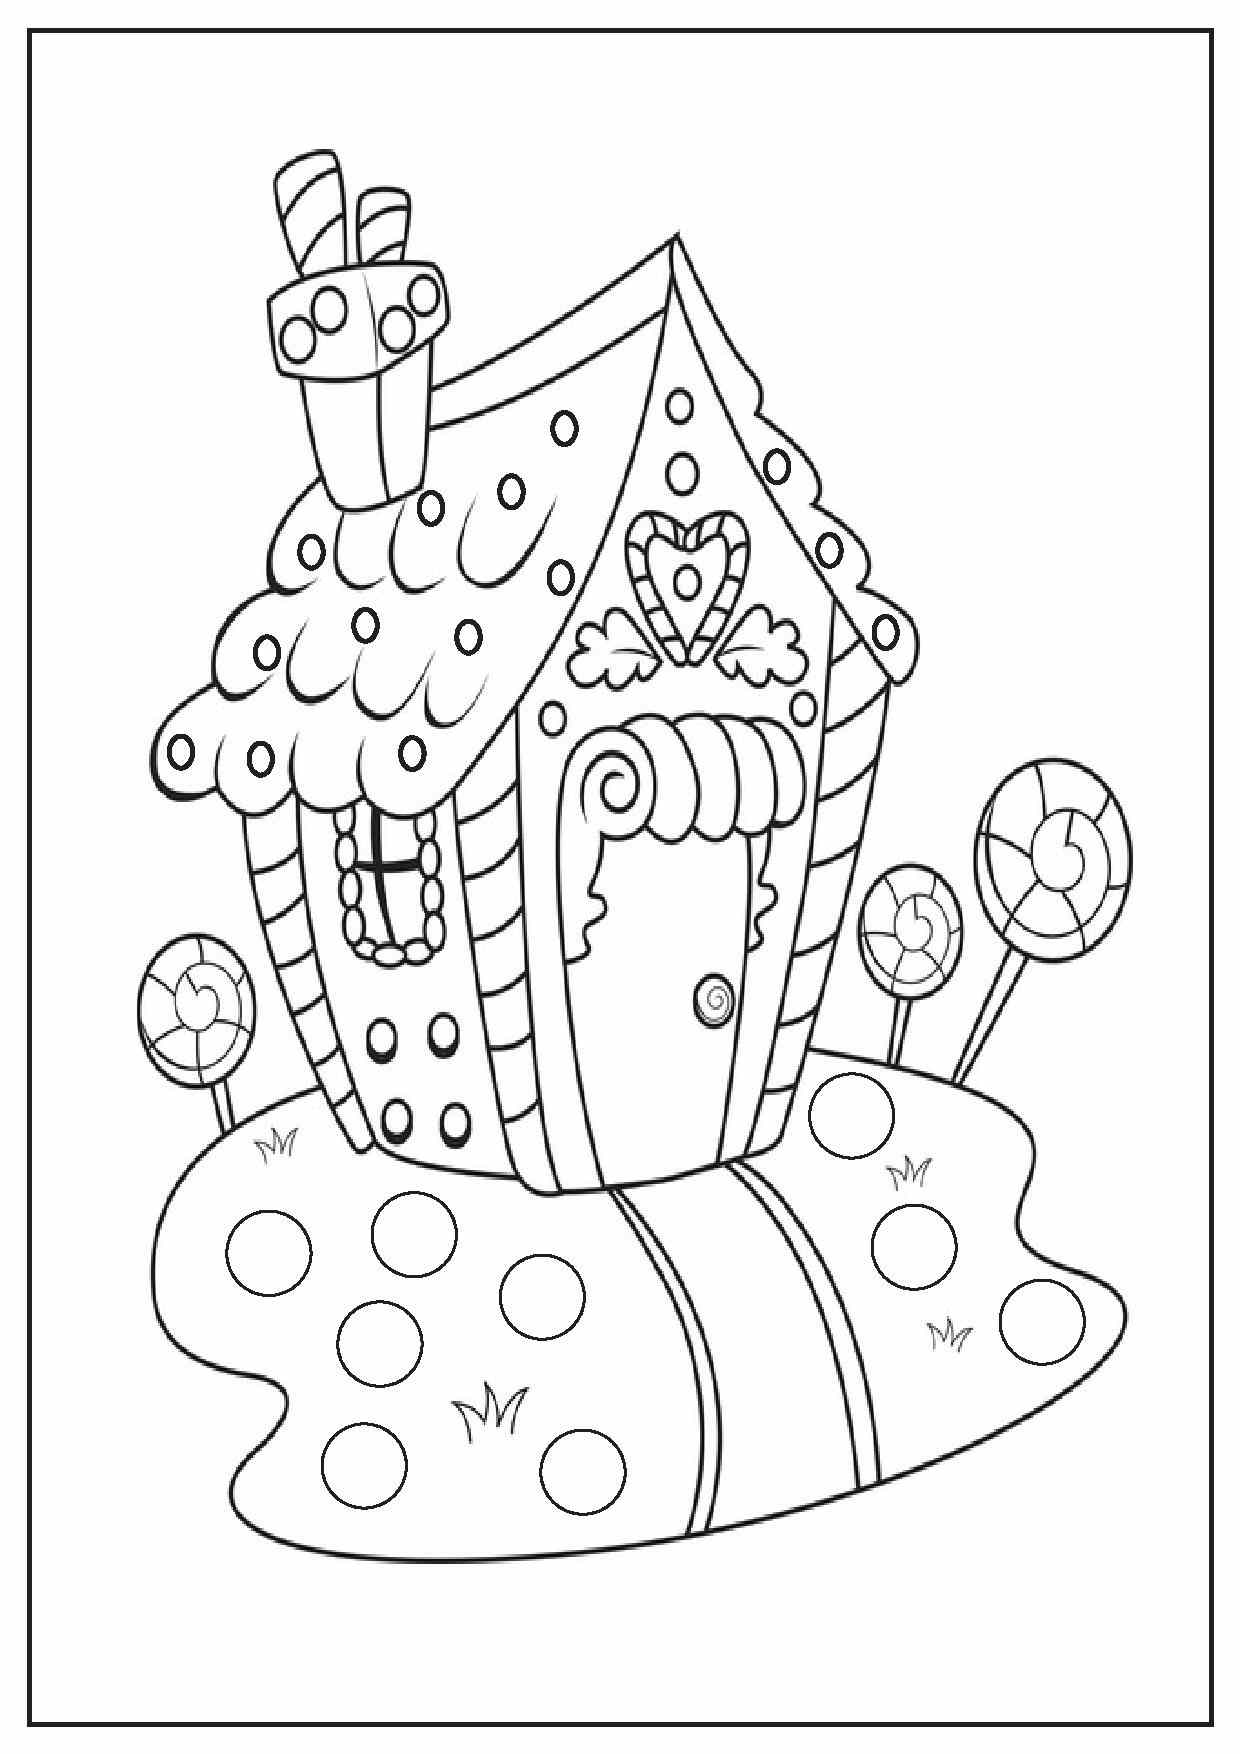 Christmas Coloring Pages For 10 Year Olds With Printable